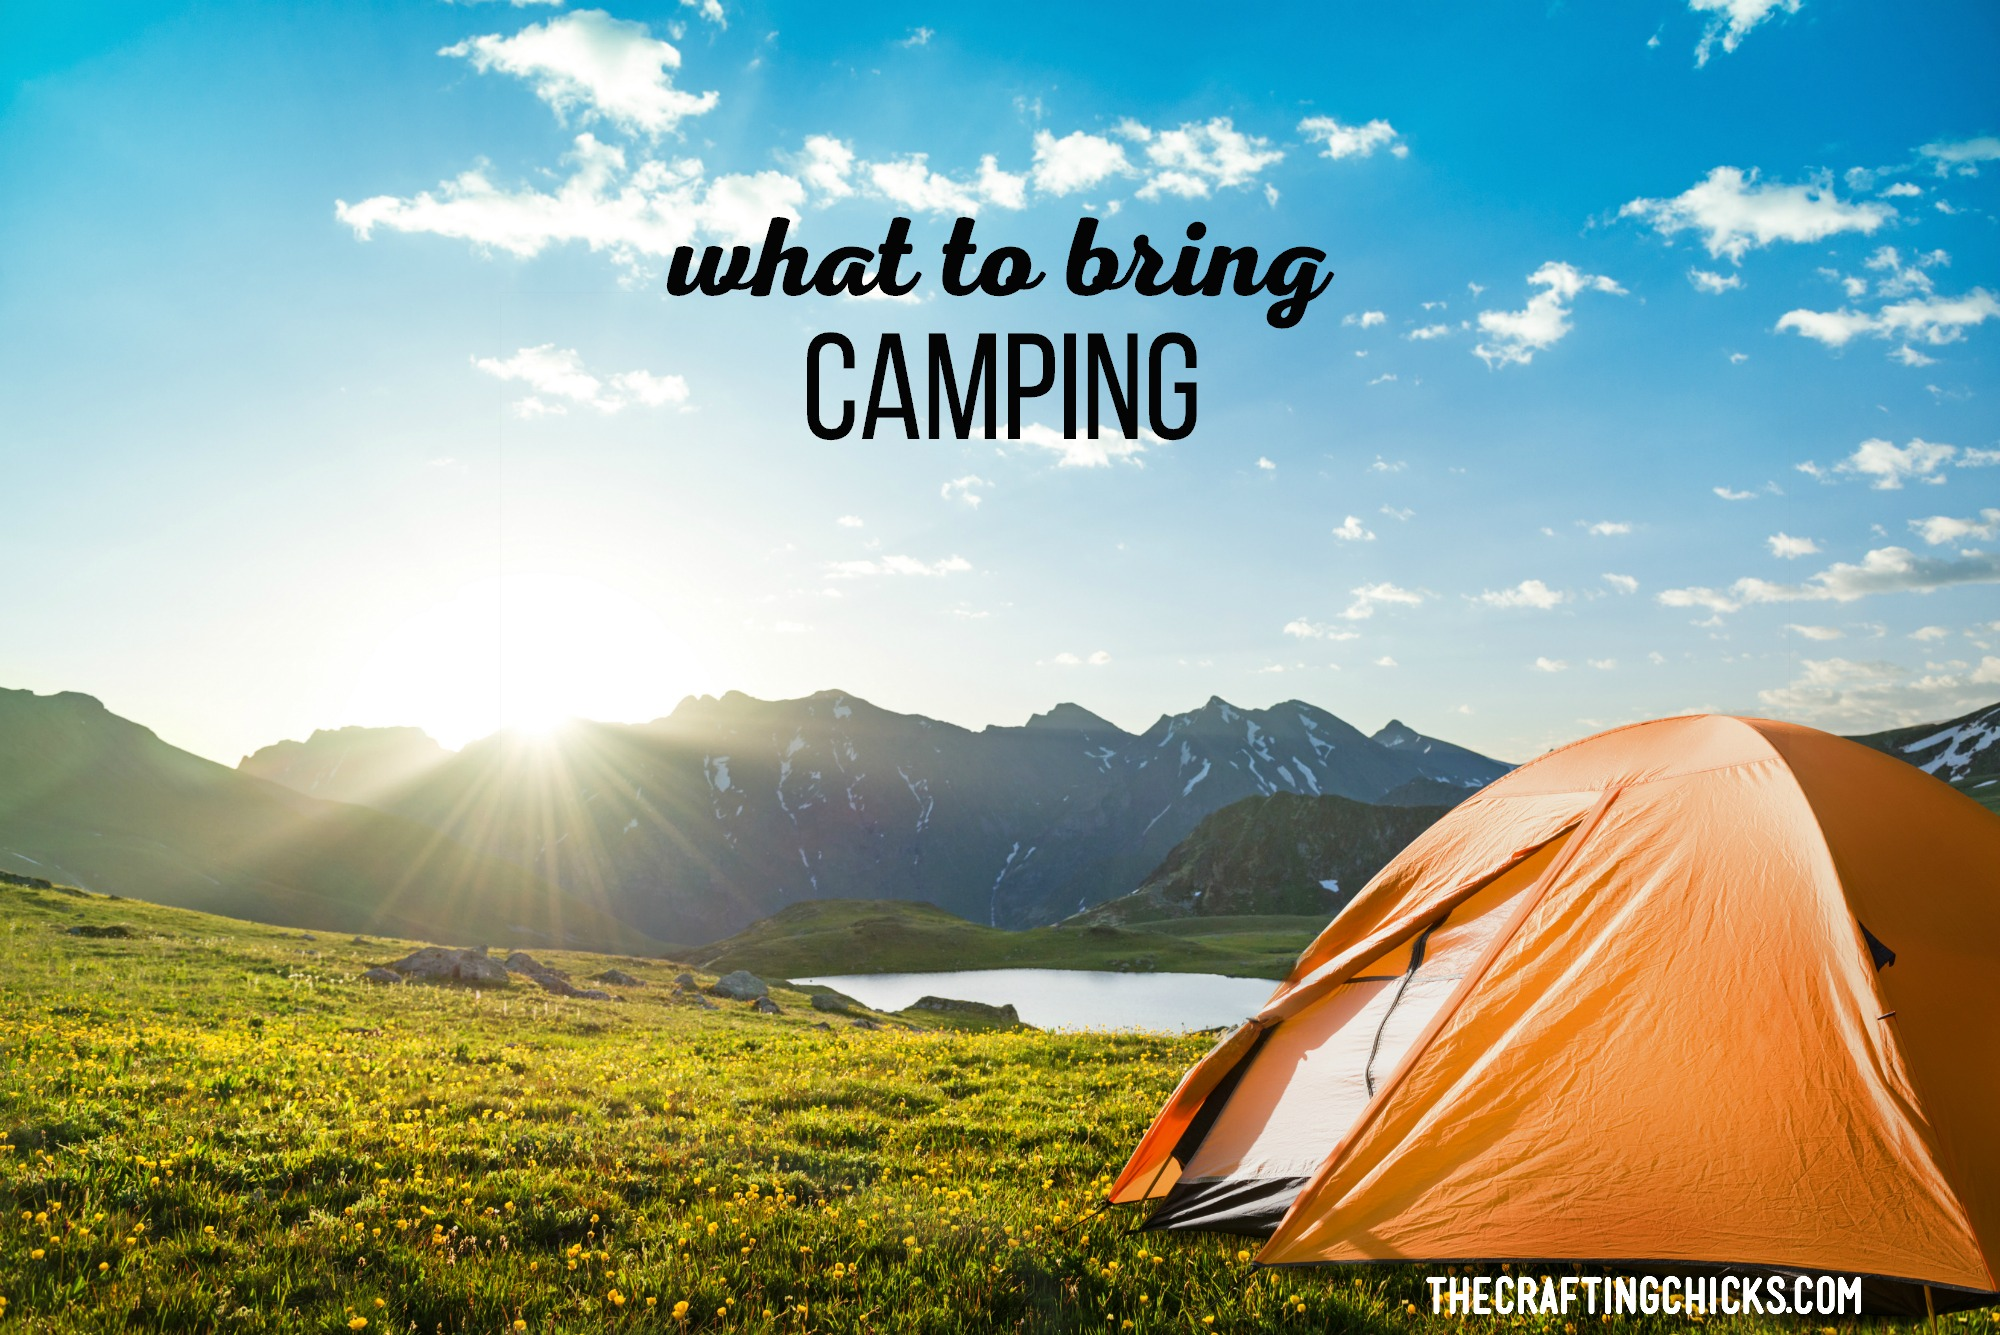 What to Bring Camping | Camping season is here! We should start planning what to bring camping because you can never start preparing too soon... especially if you have a family to bring along. Here's our list of What to Bring Camping. #camping #packing #tips